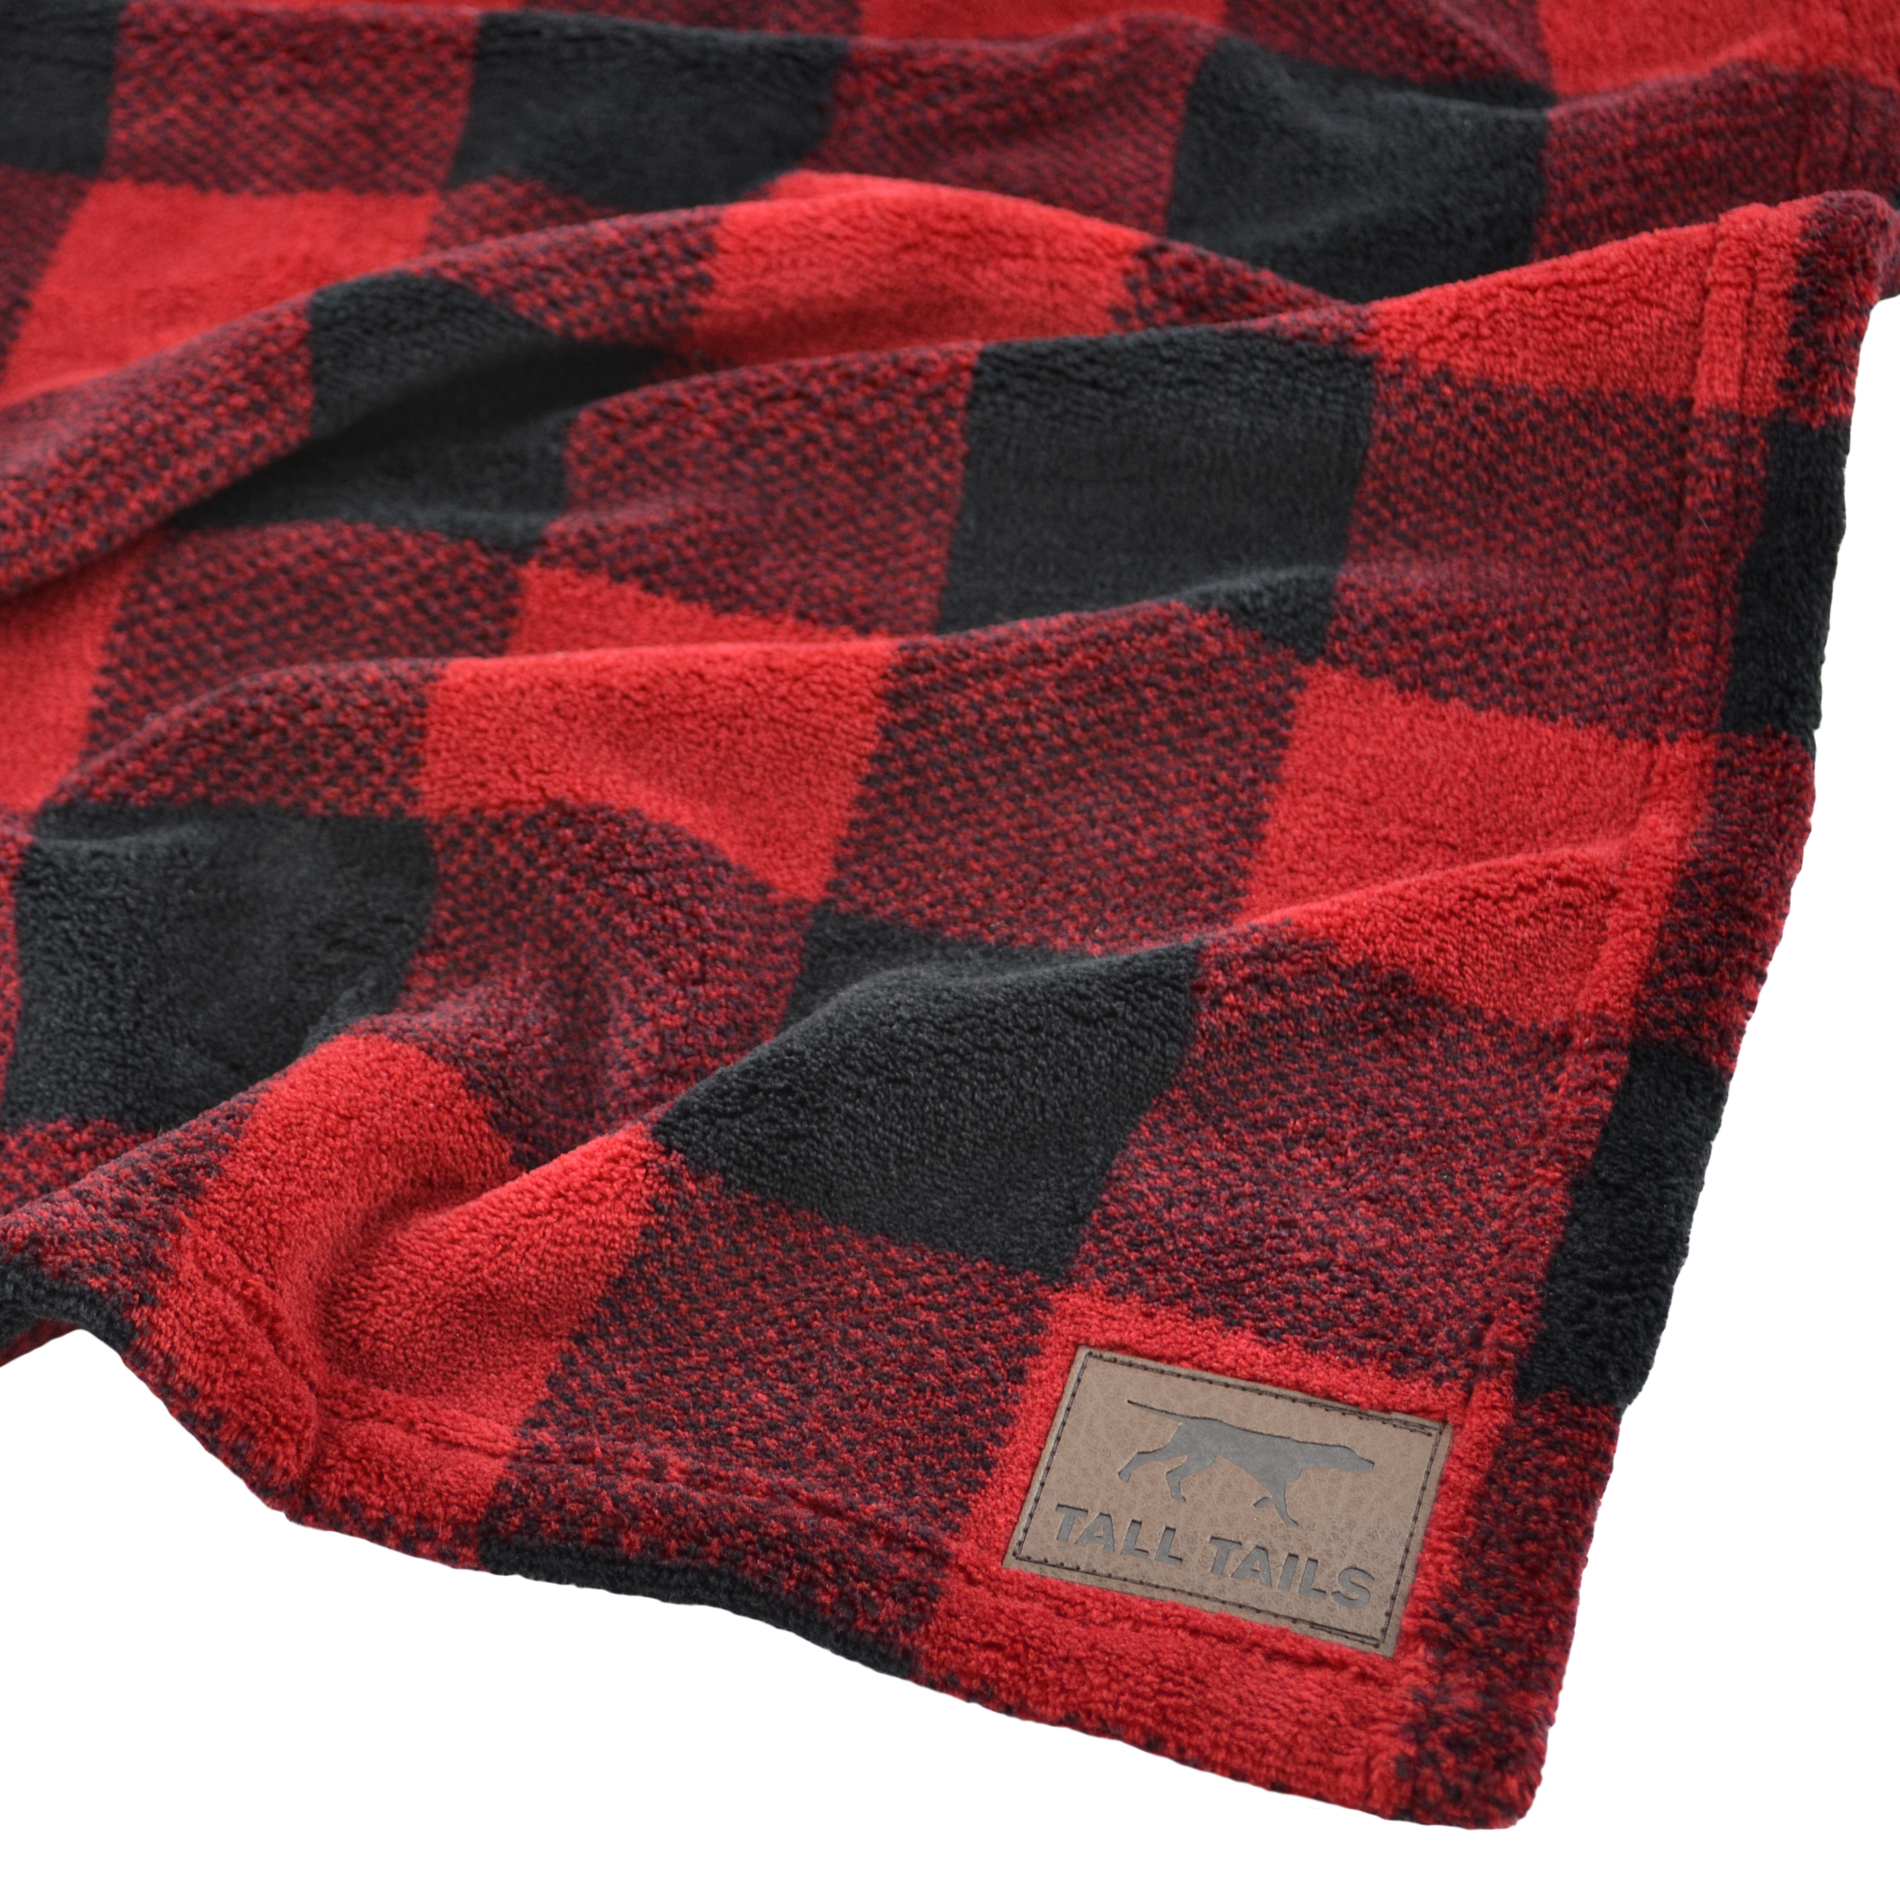 Tall Tails Dog Blanket, Hunter's Plaid, Red Image